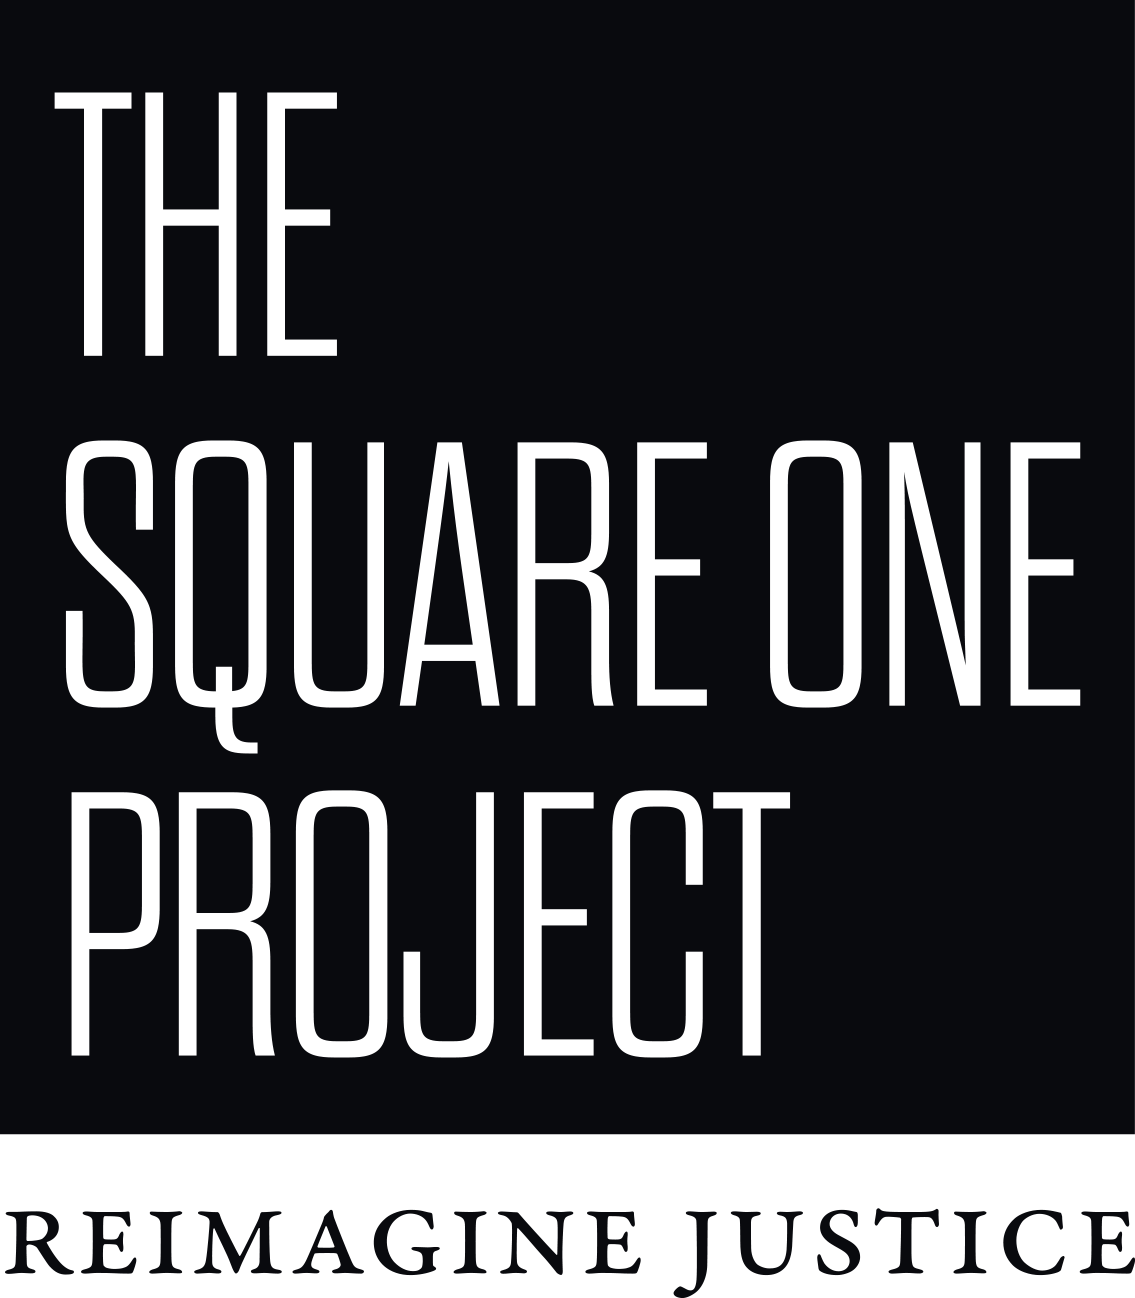 Square One Project